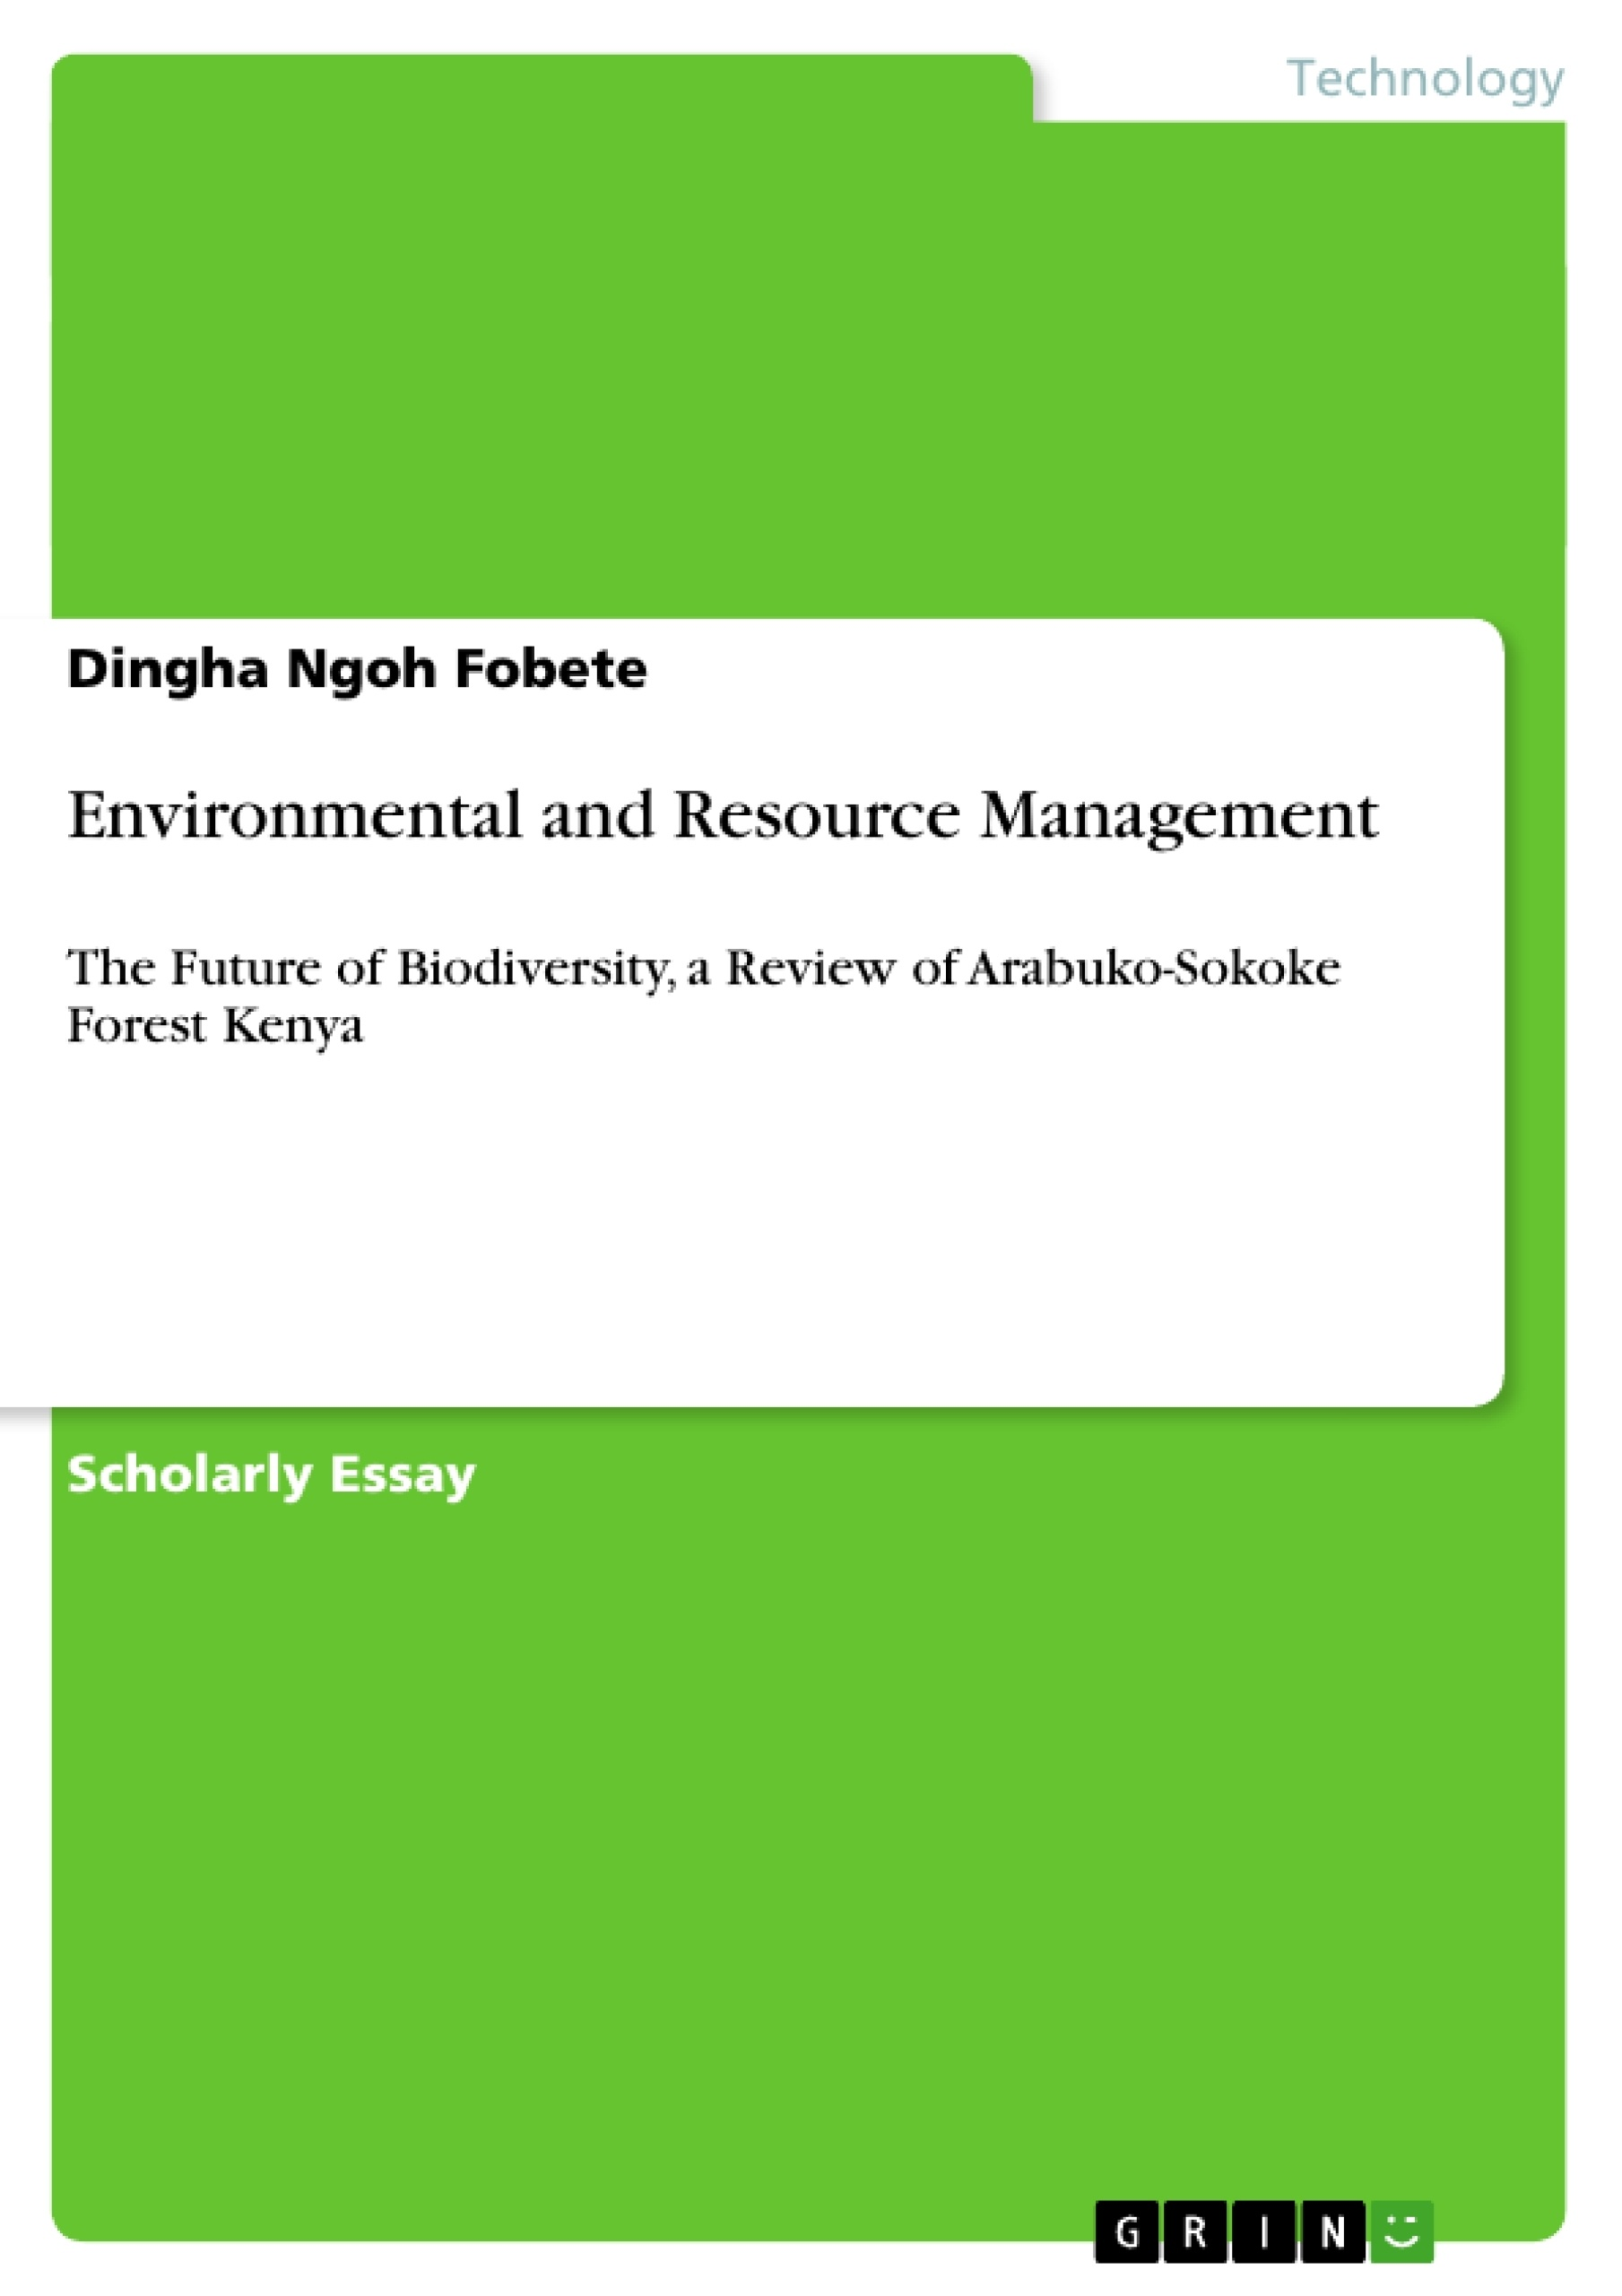 Title: Environmental and Resource Management